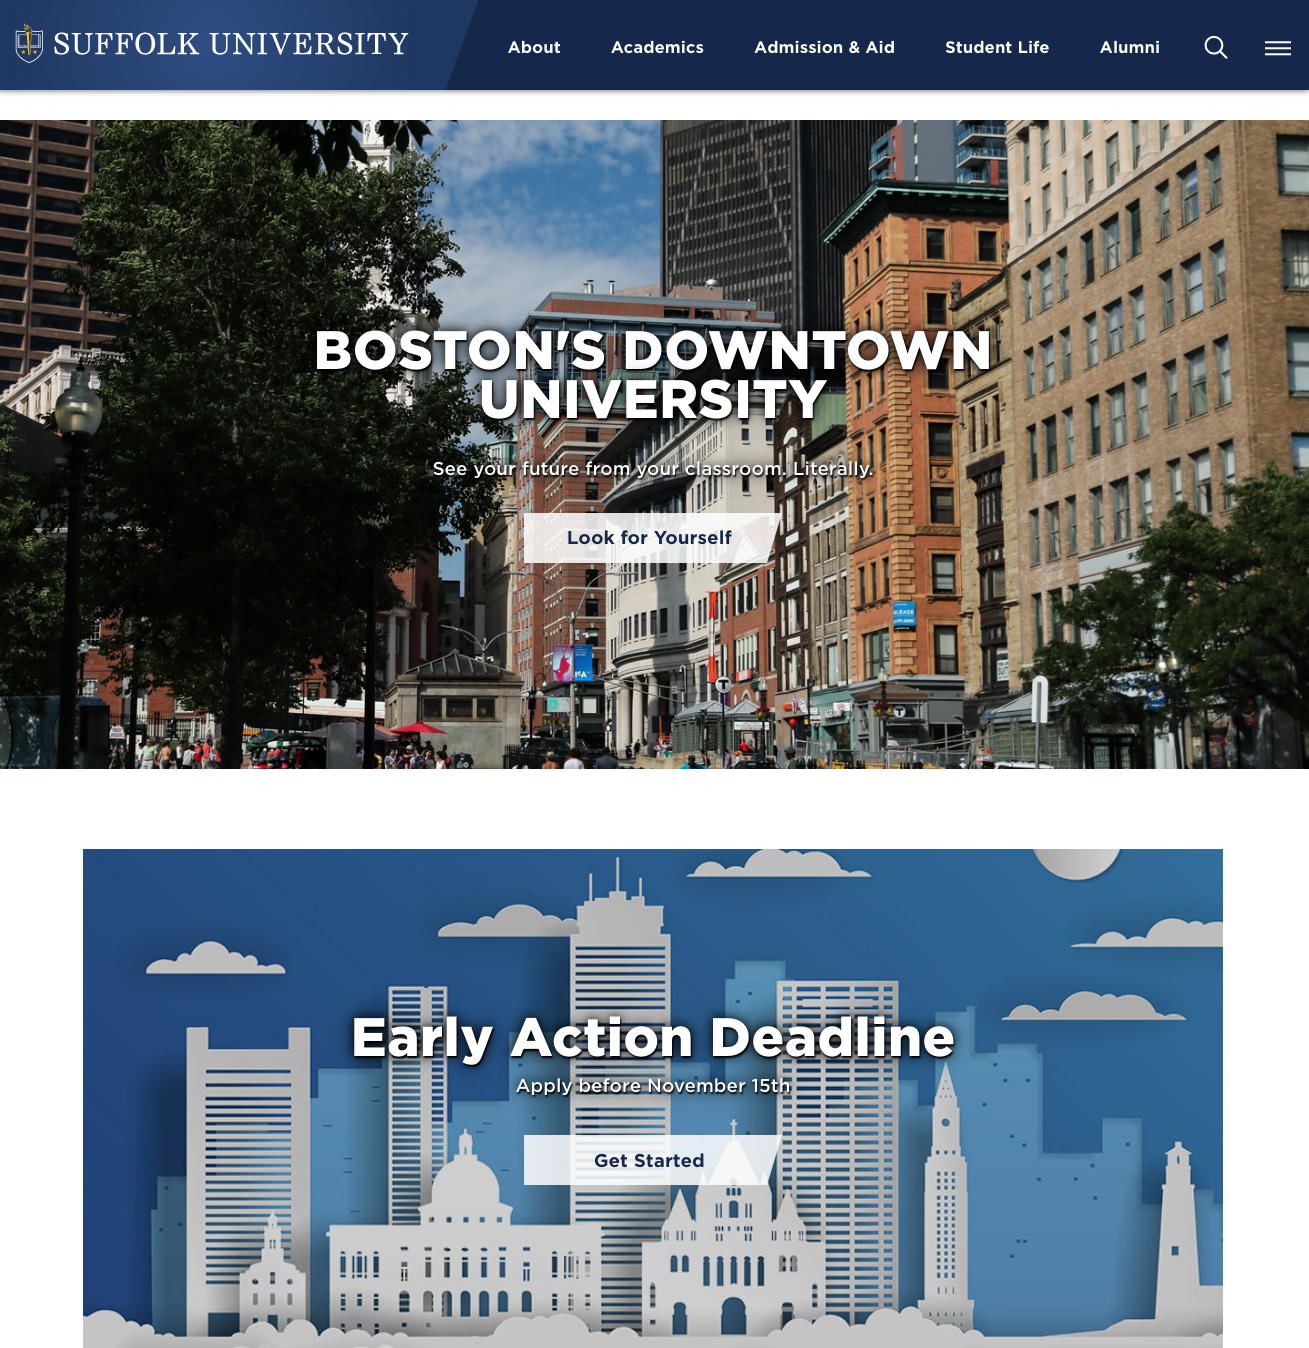 Suffolk University Website image